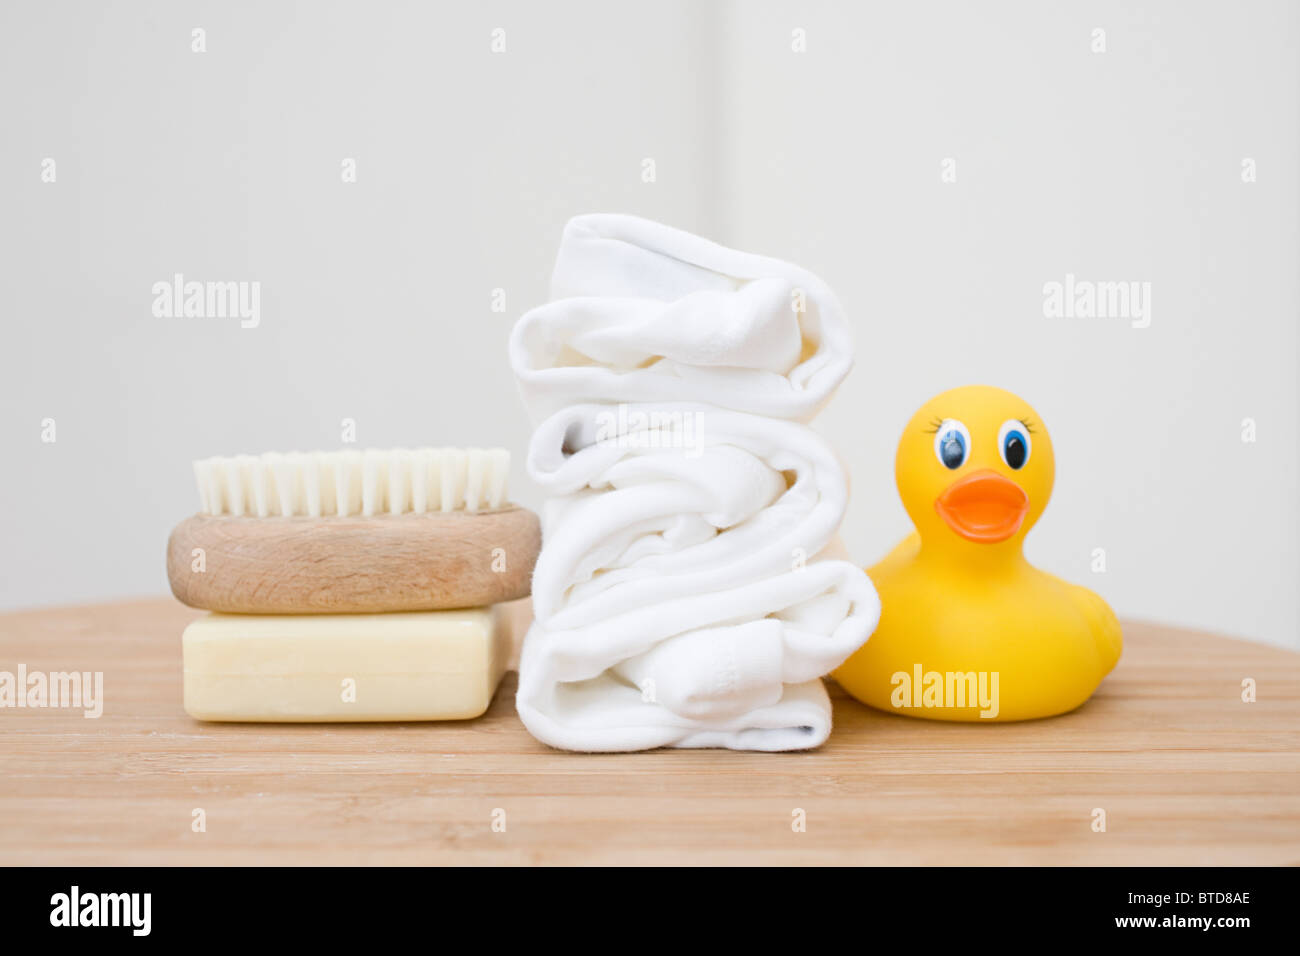 Bad Accessoires Baby Bad Accessoires Stockfoto Bild 32254054 Alamy